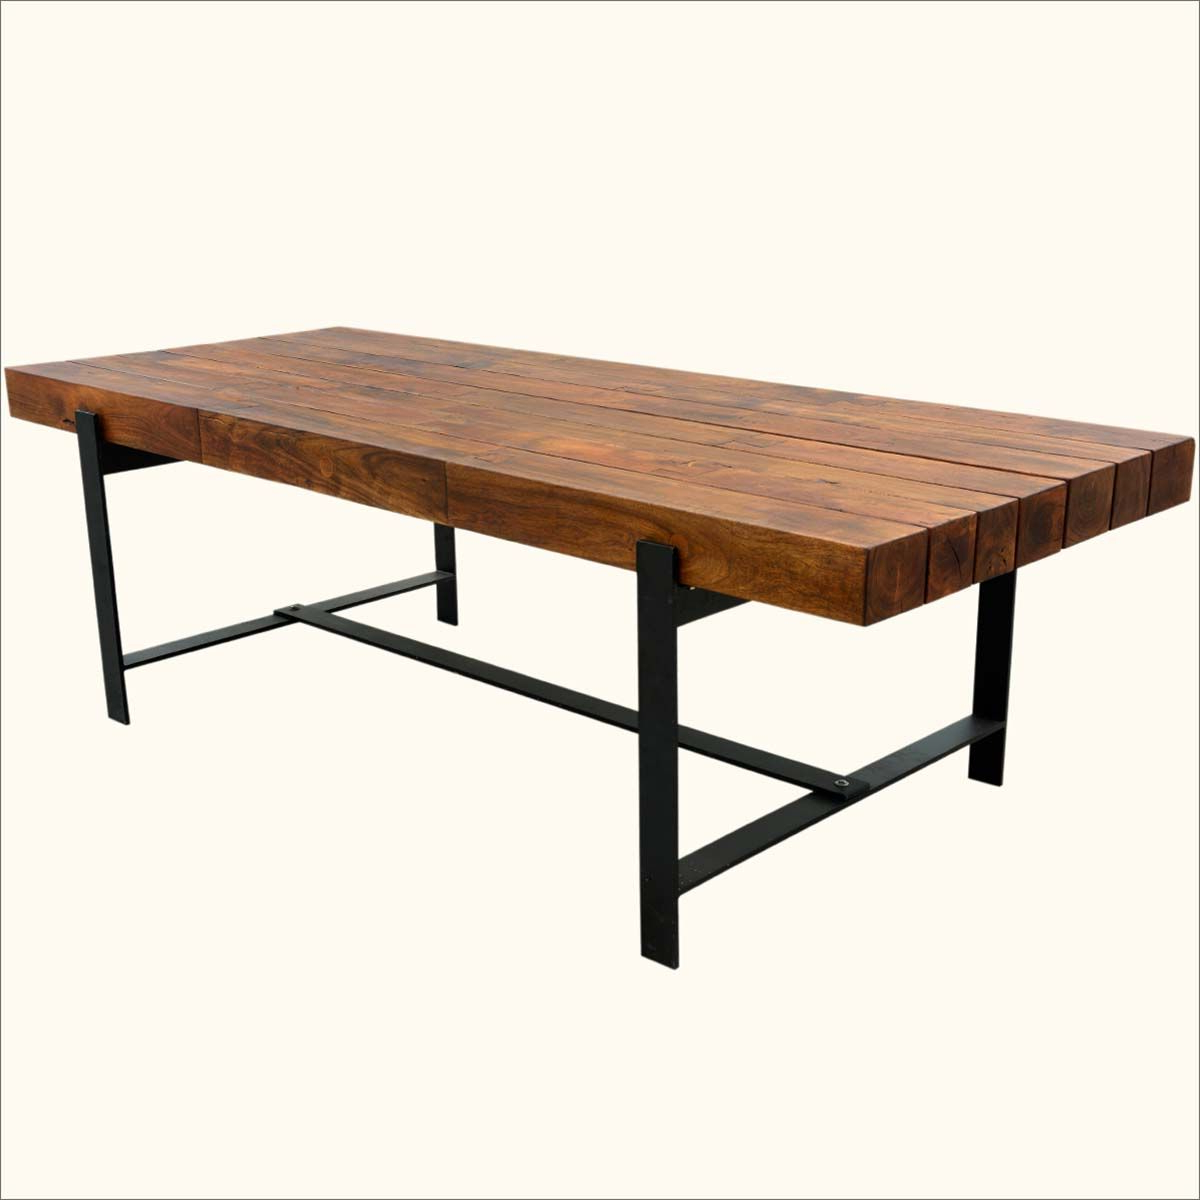 "Unique Acacia Wood Dining Tables In Favorite Industrial Iron & Acacia Wood 94"" Large Rustic Dining Table (Gallery 4 of 30)"